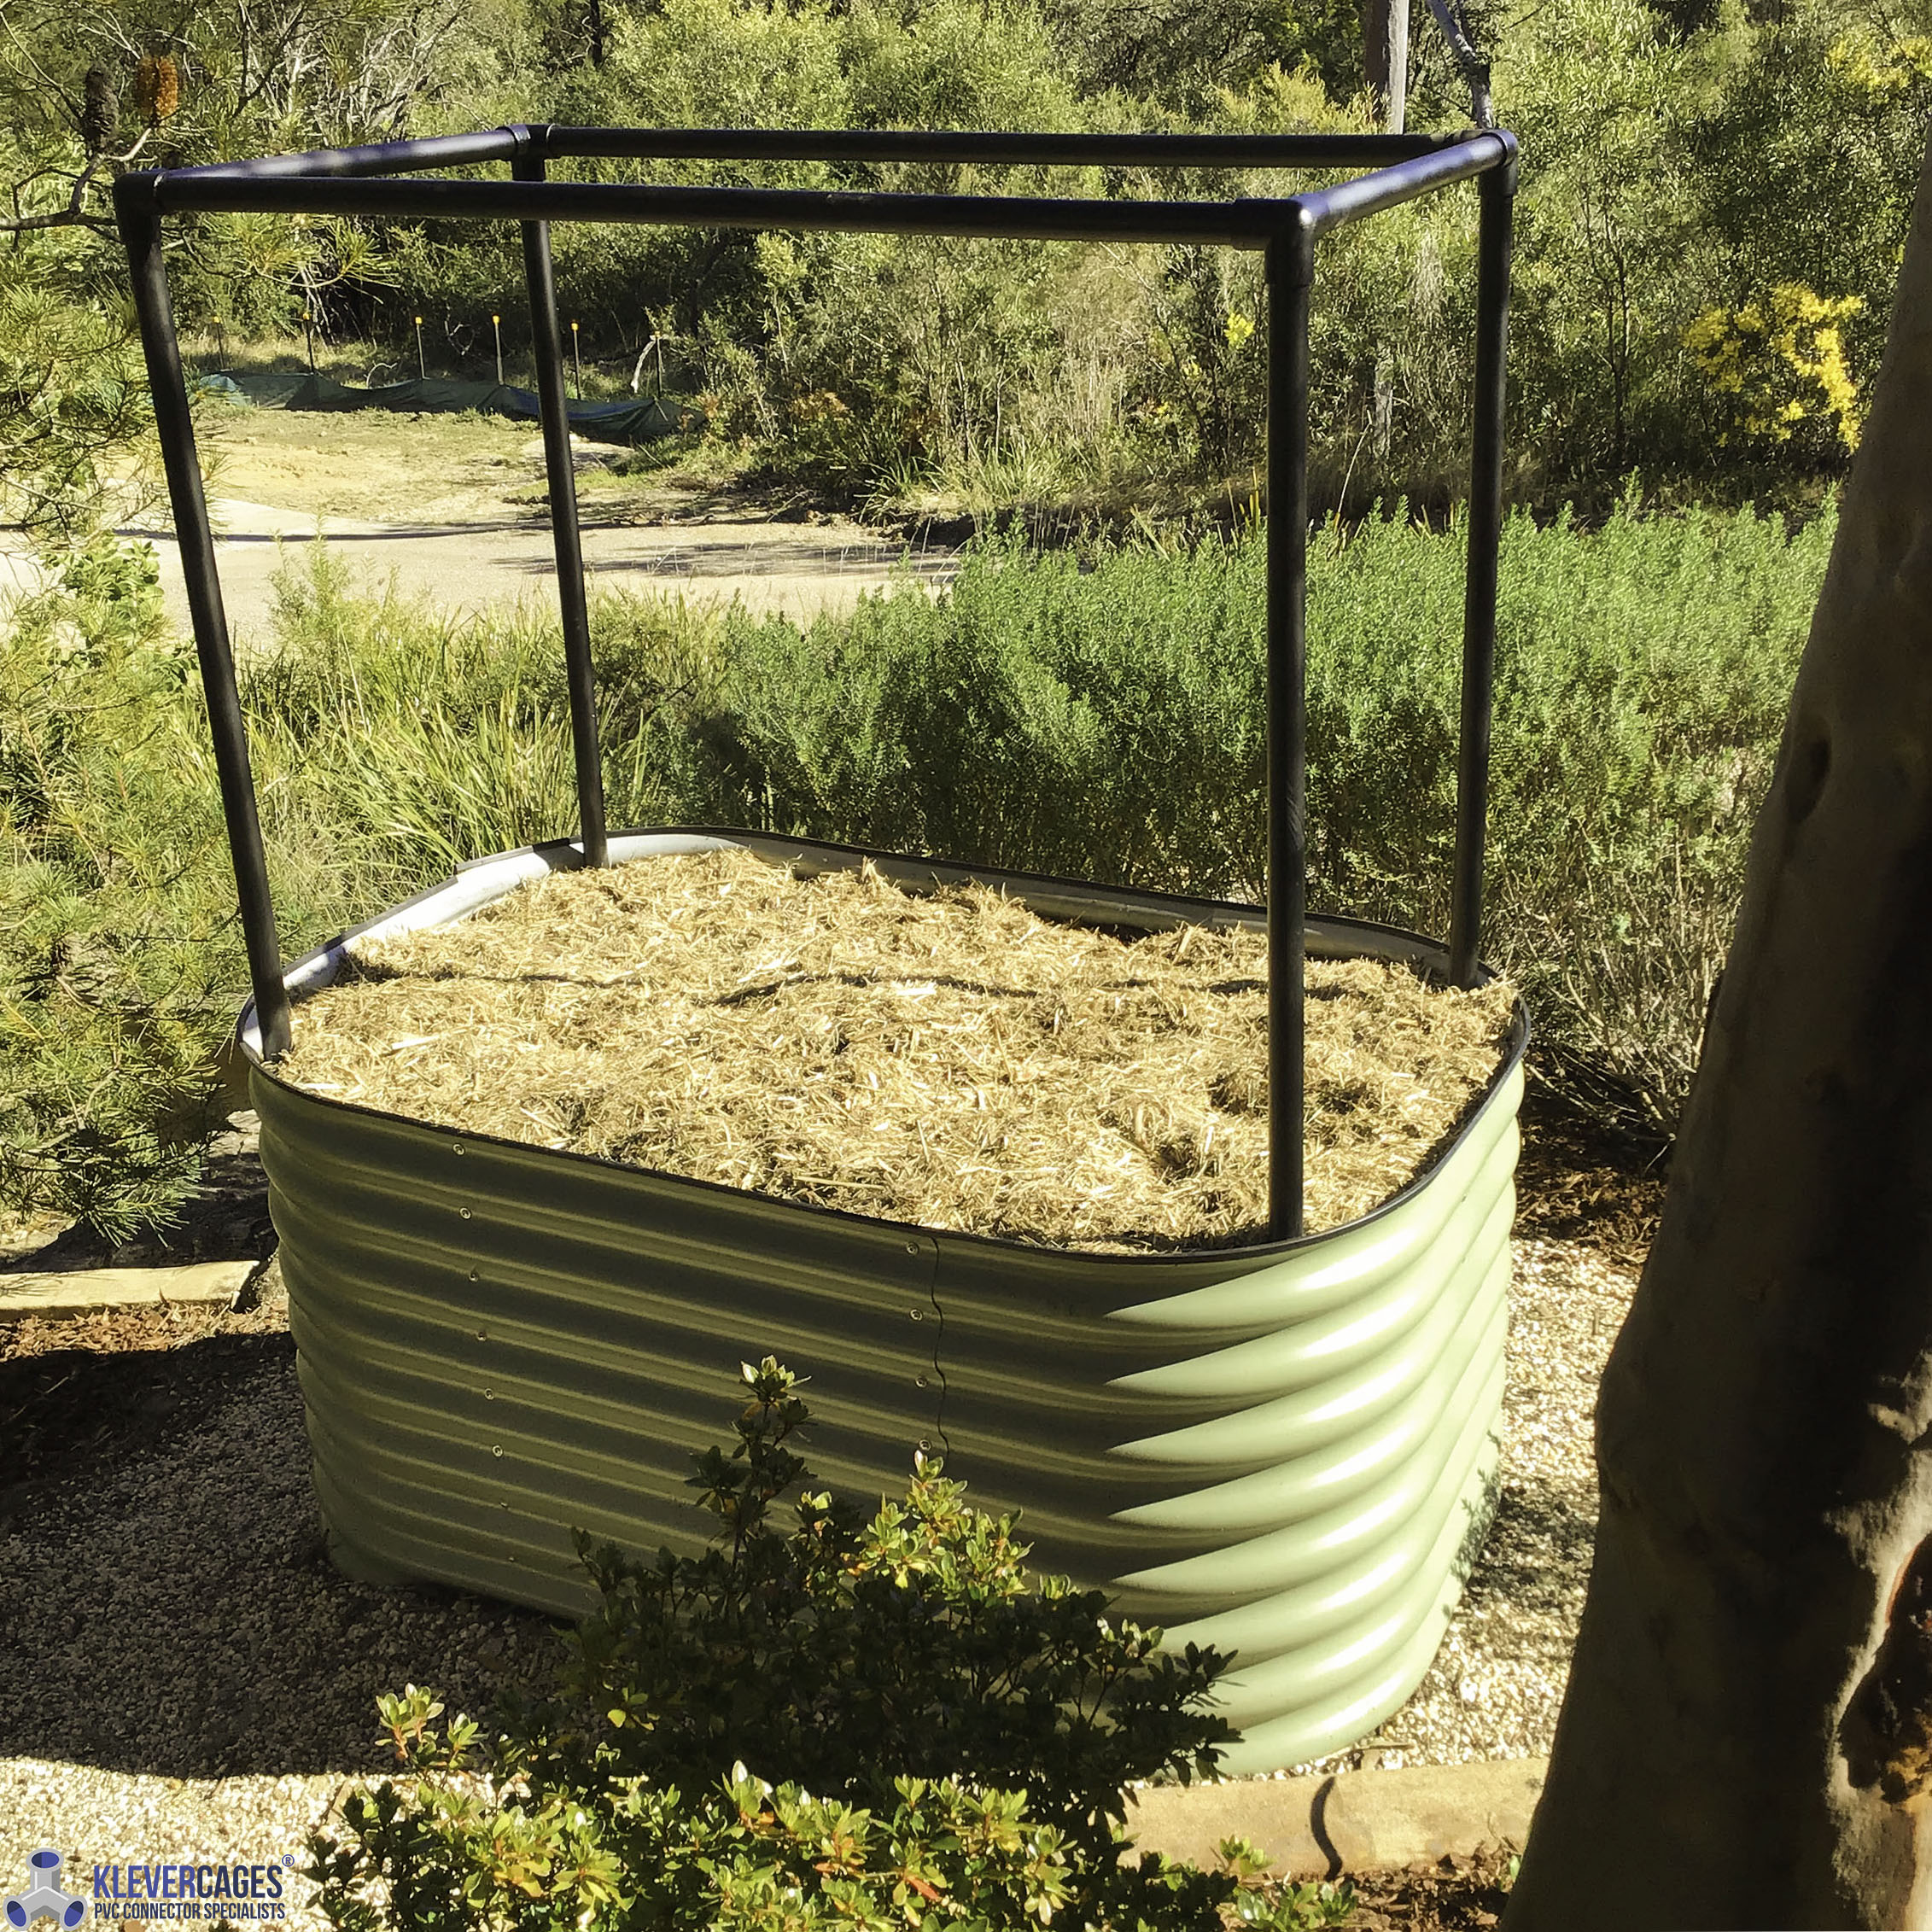 green-corrugated-iron-raised-garden-bed-with-a-black-pvc-pipe-frame-20mm-class-12-3-way-elbow-connector-fittings-klever-cages.jpg